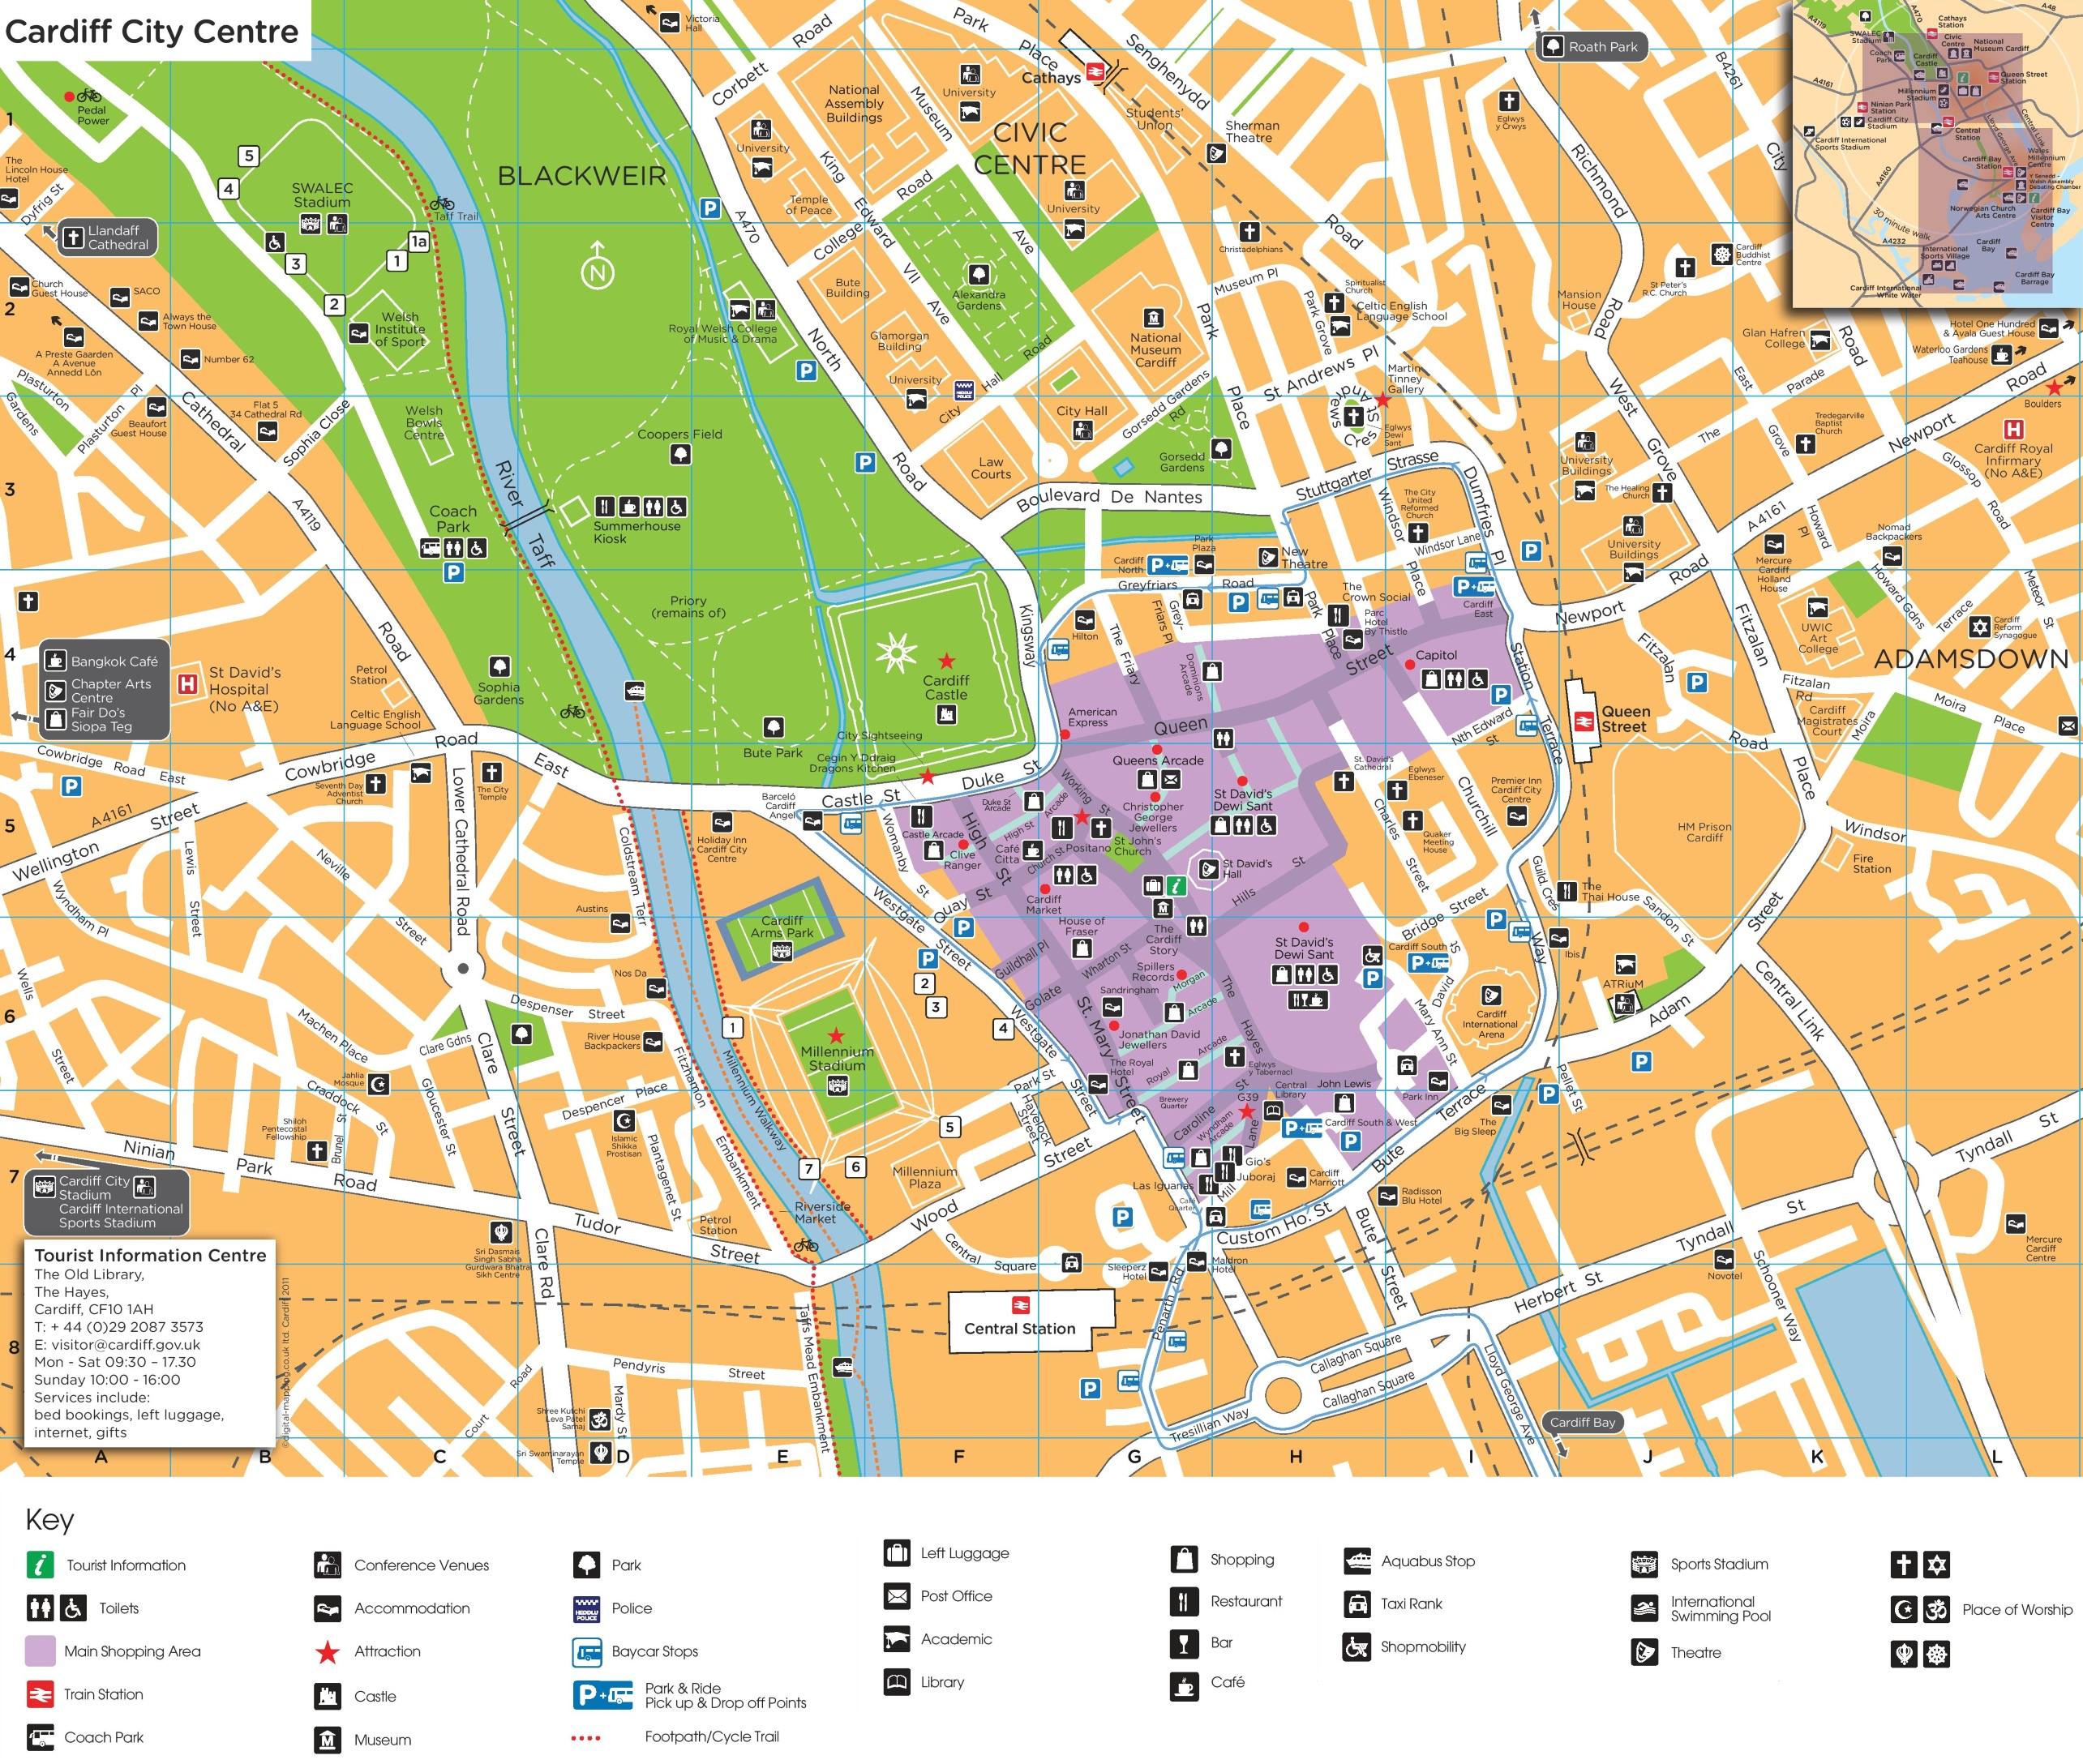 Map Of Cardiff Cardiff city center map Map Of Cardiff